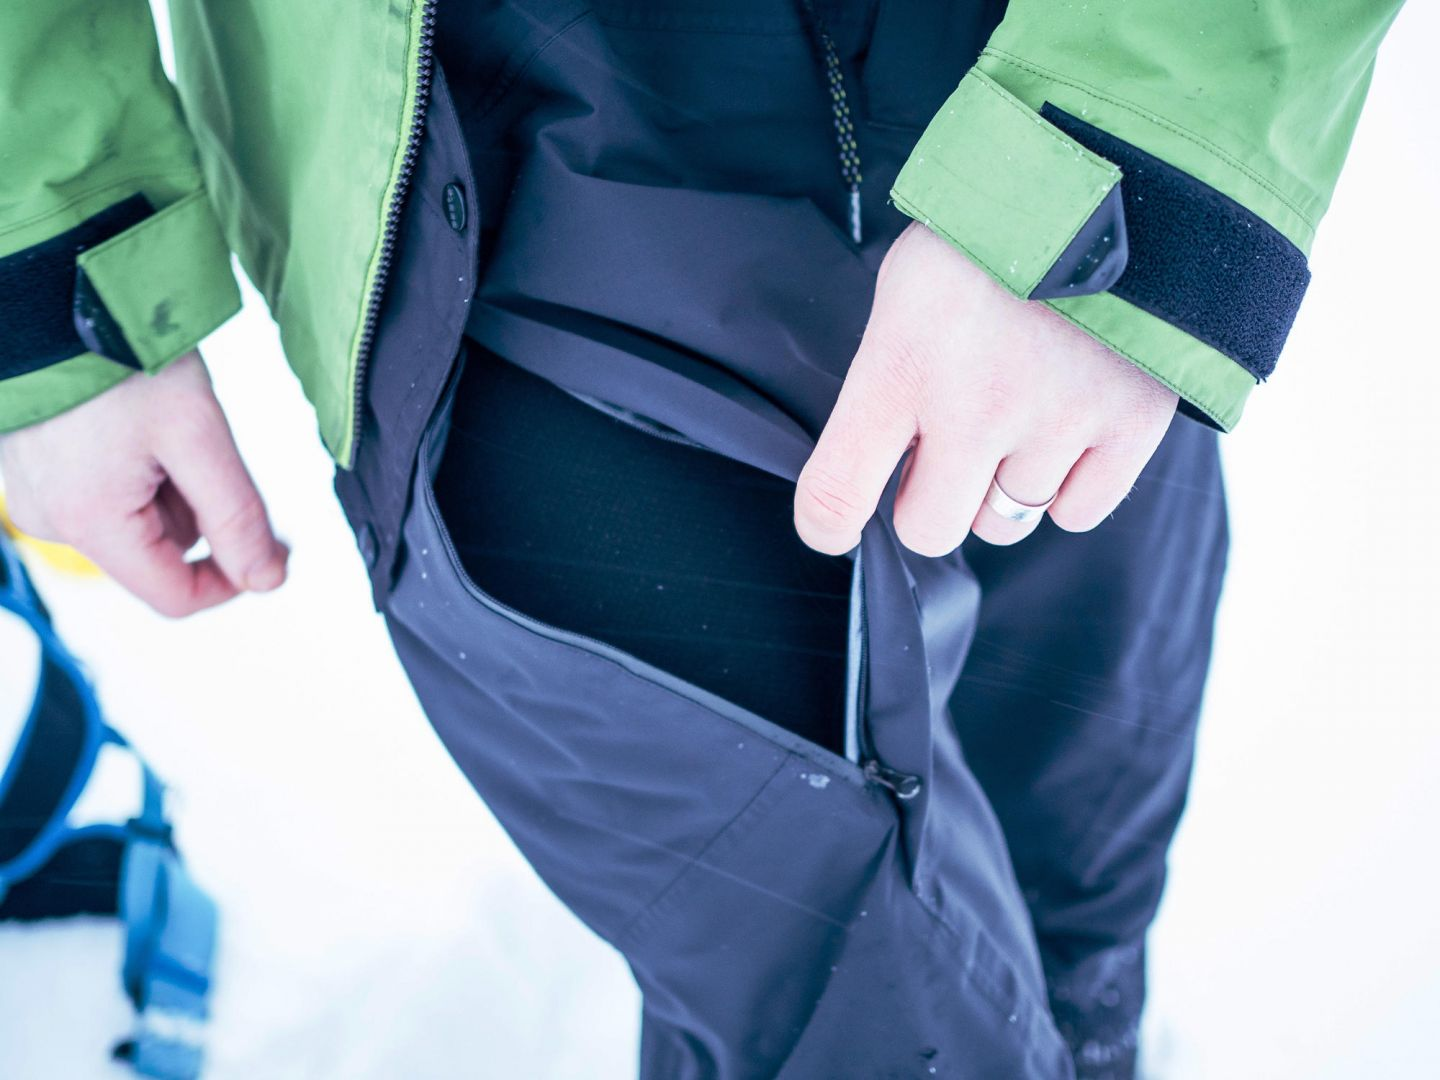 Winter pants often have easy access to inner pockets